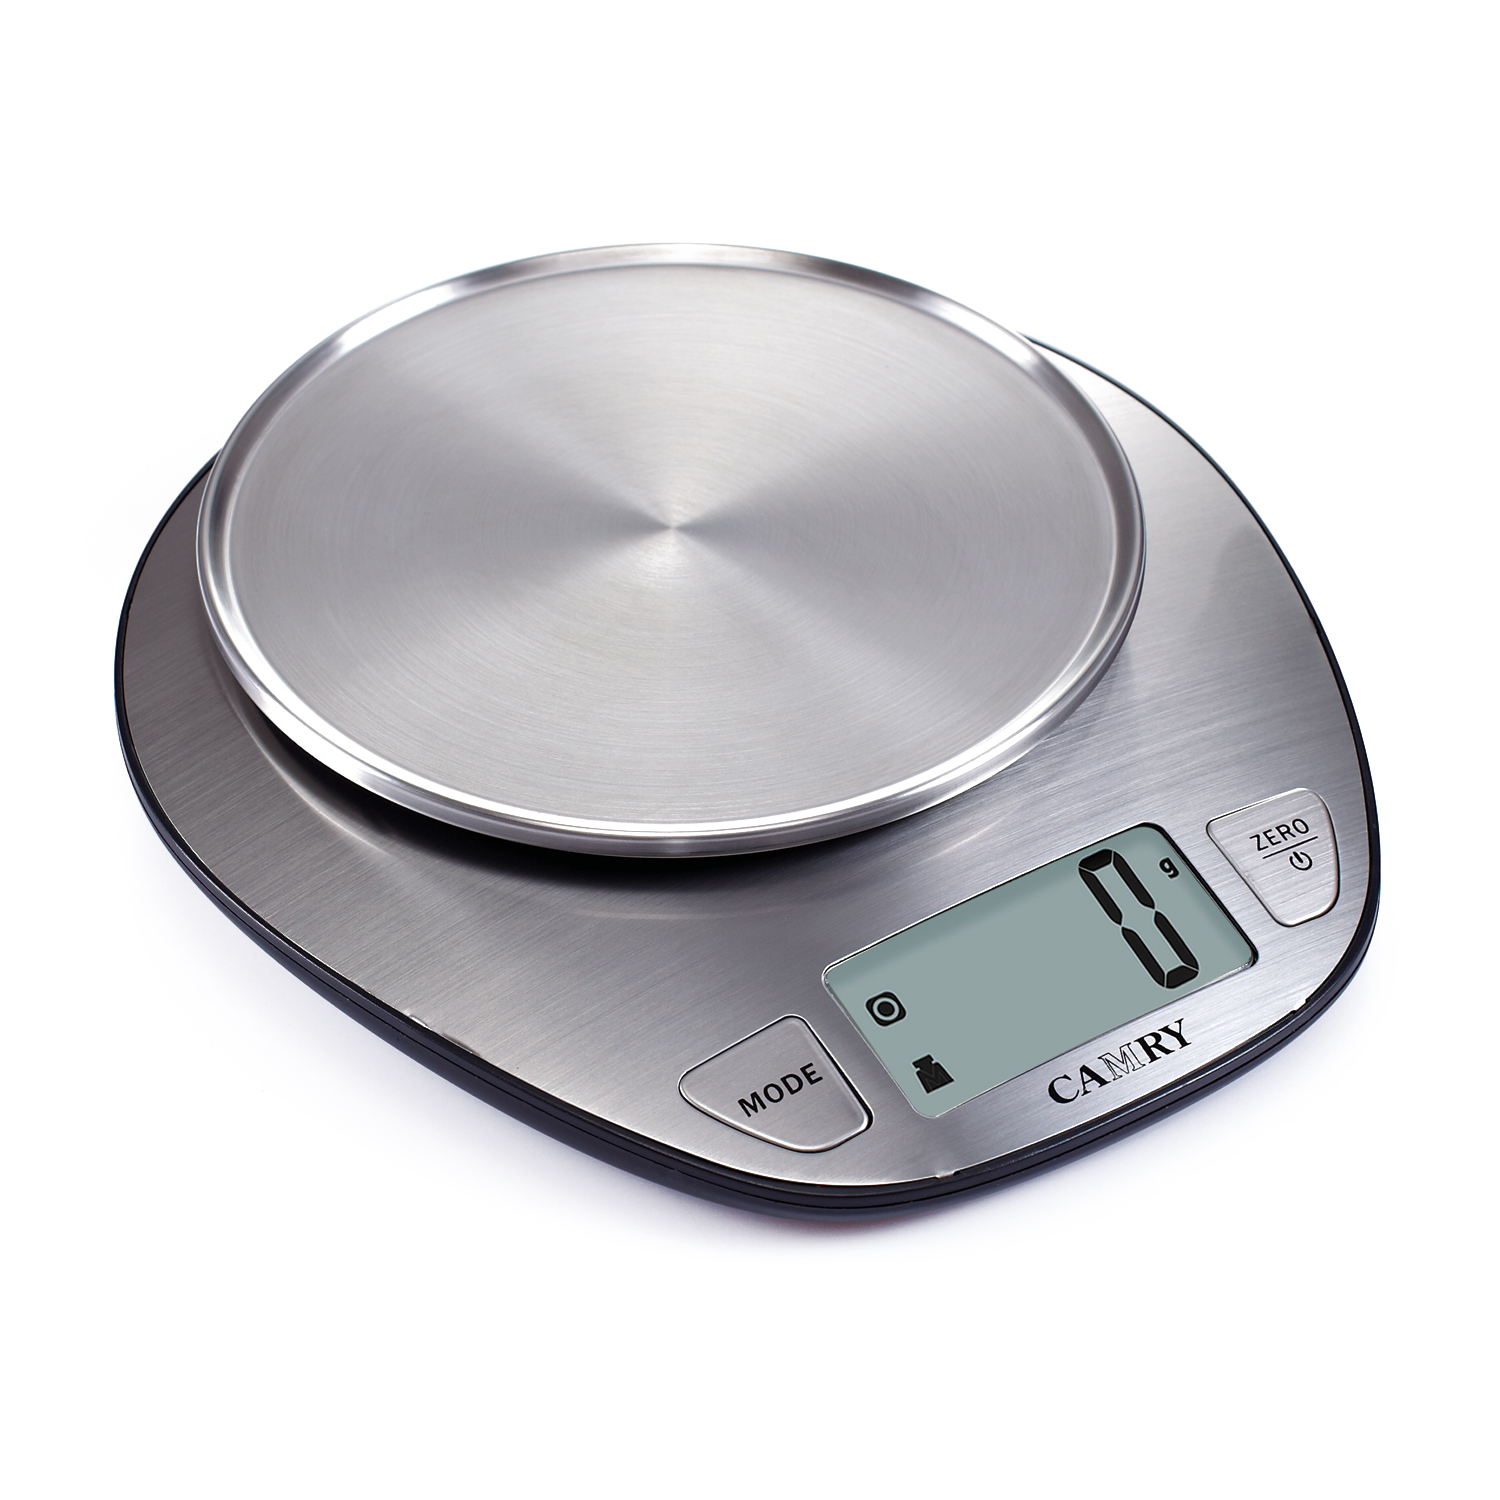 Image of Casa Digital Stainless Steel Scale